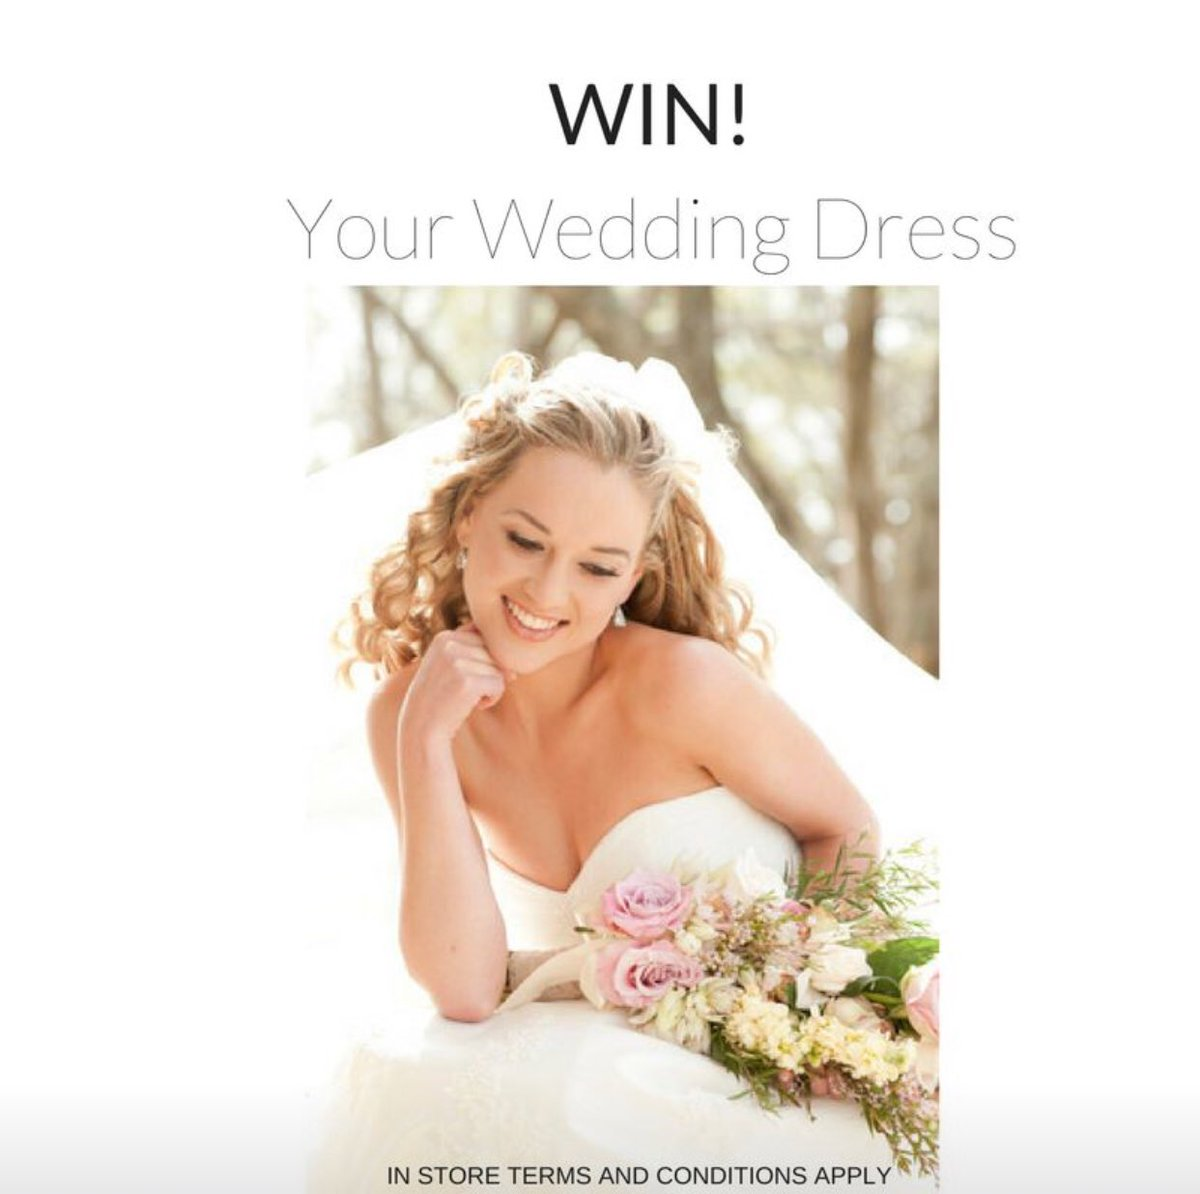 RETWEET for a chance to WIN! Entries close 21st of October 2017 midnight. #win #wedding #weddingdress terms and conditions apply<br>http://pic.twitter.com/g1WmssBfUI